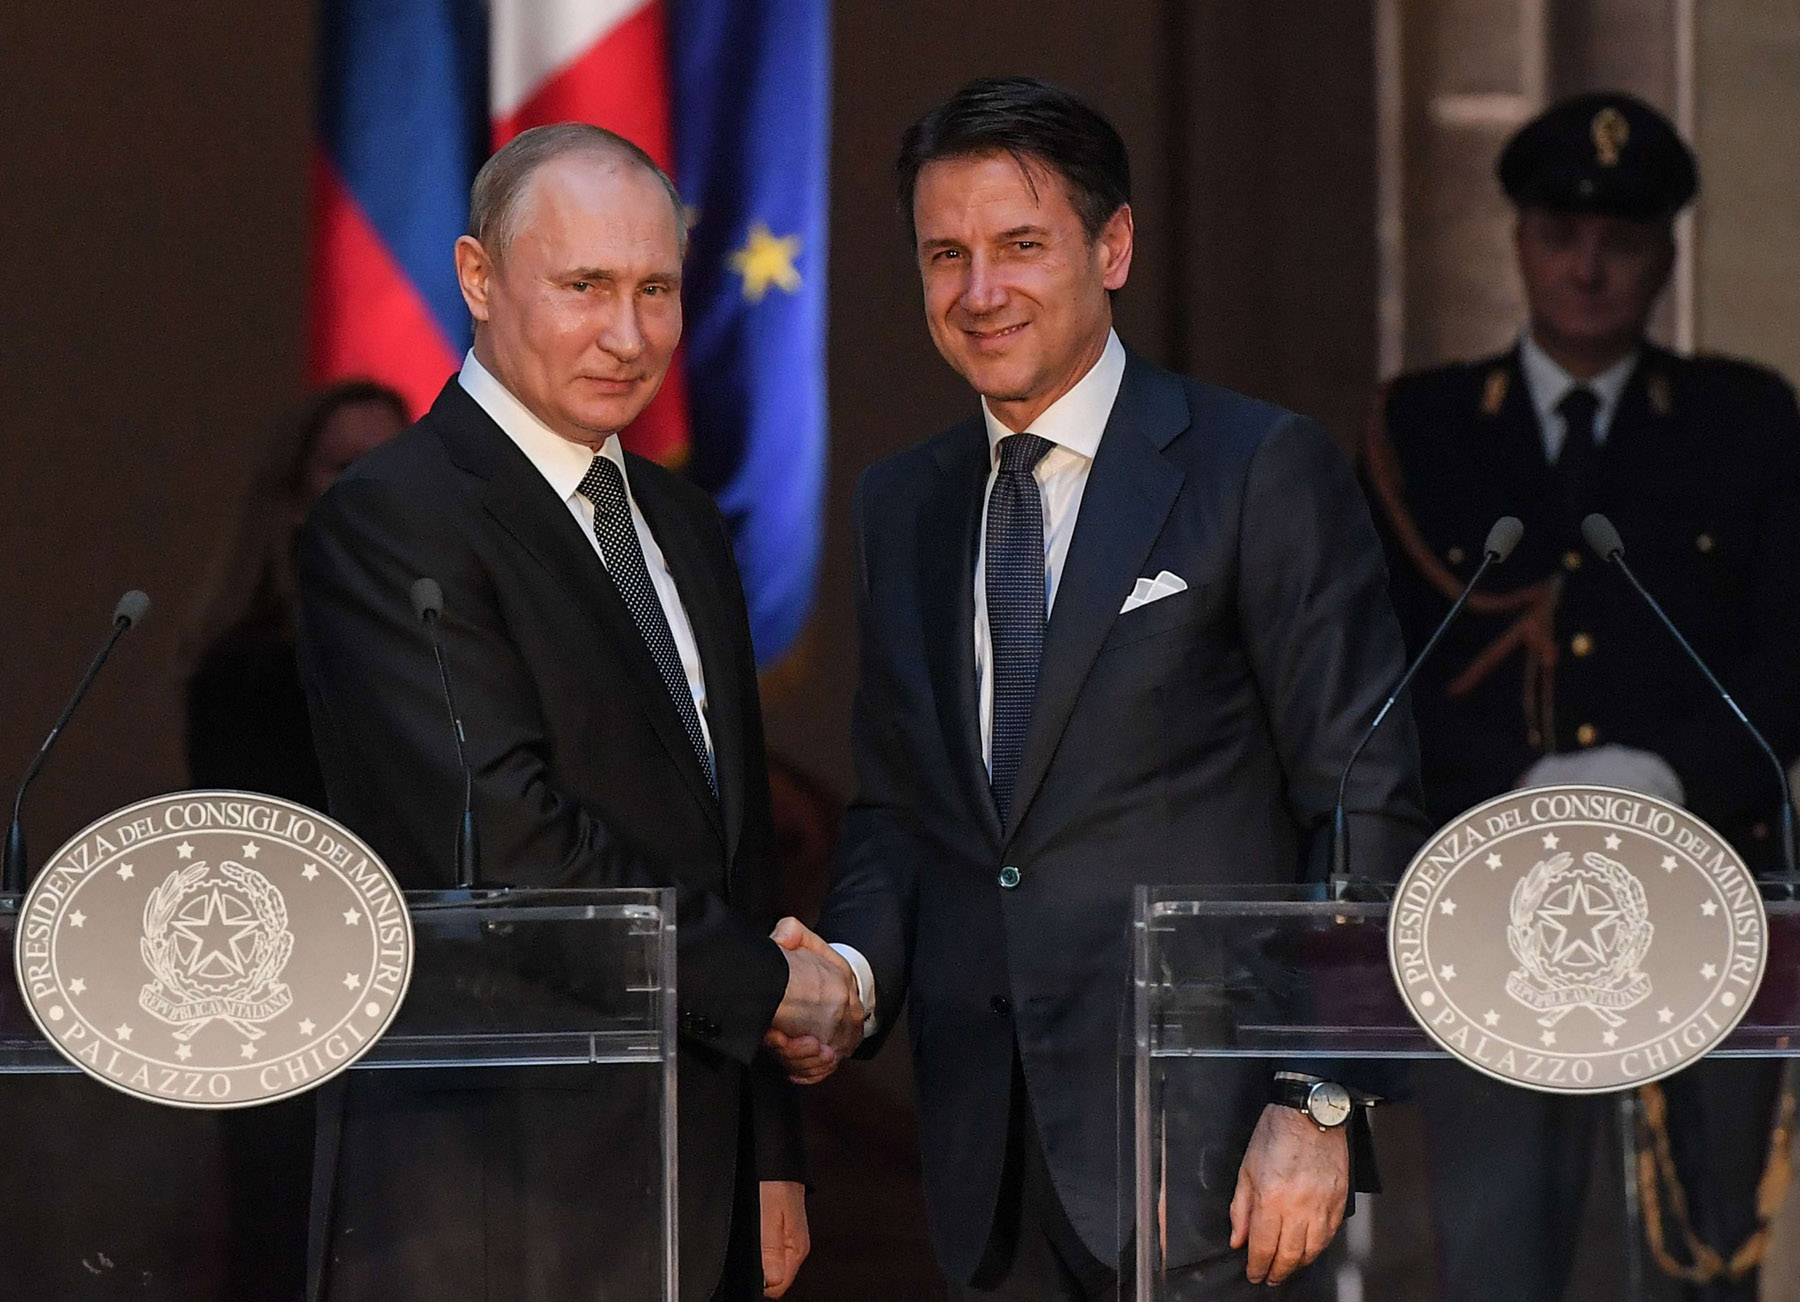 Italian Prime Minister Giuseppe Conte (R) and Russian President Vladimir Putin shake hands after a joint news conference in Rome, July 4. (AFP)